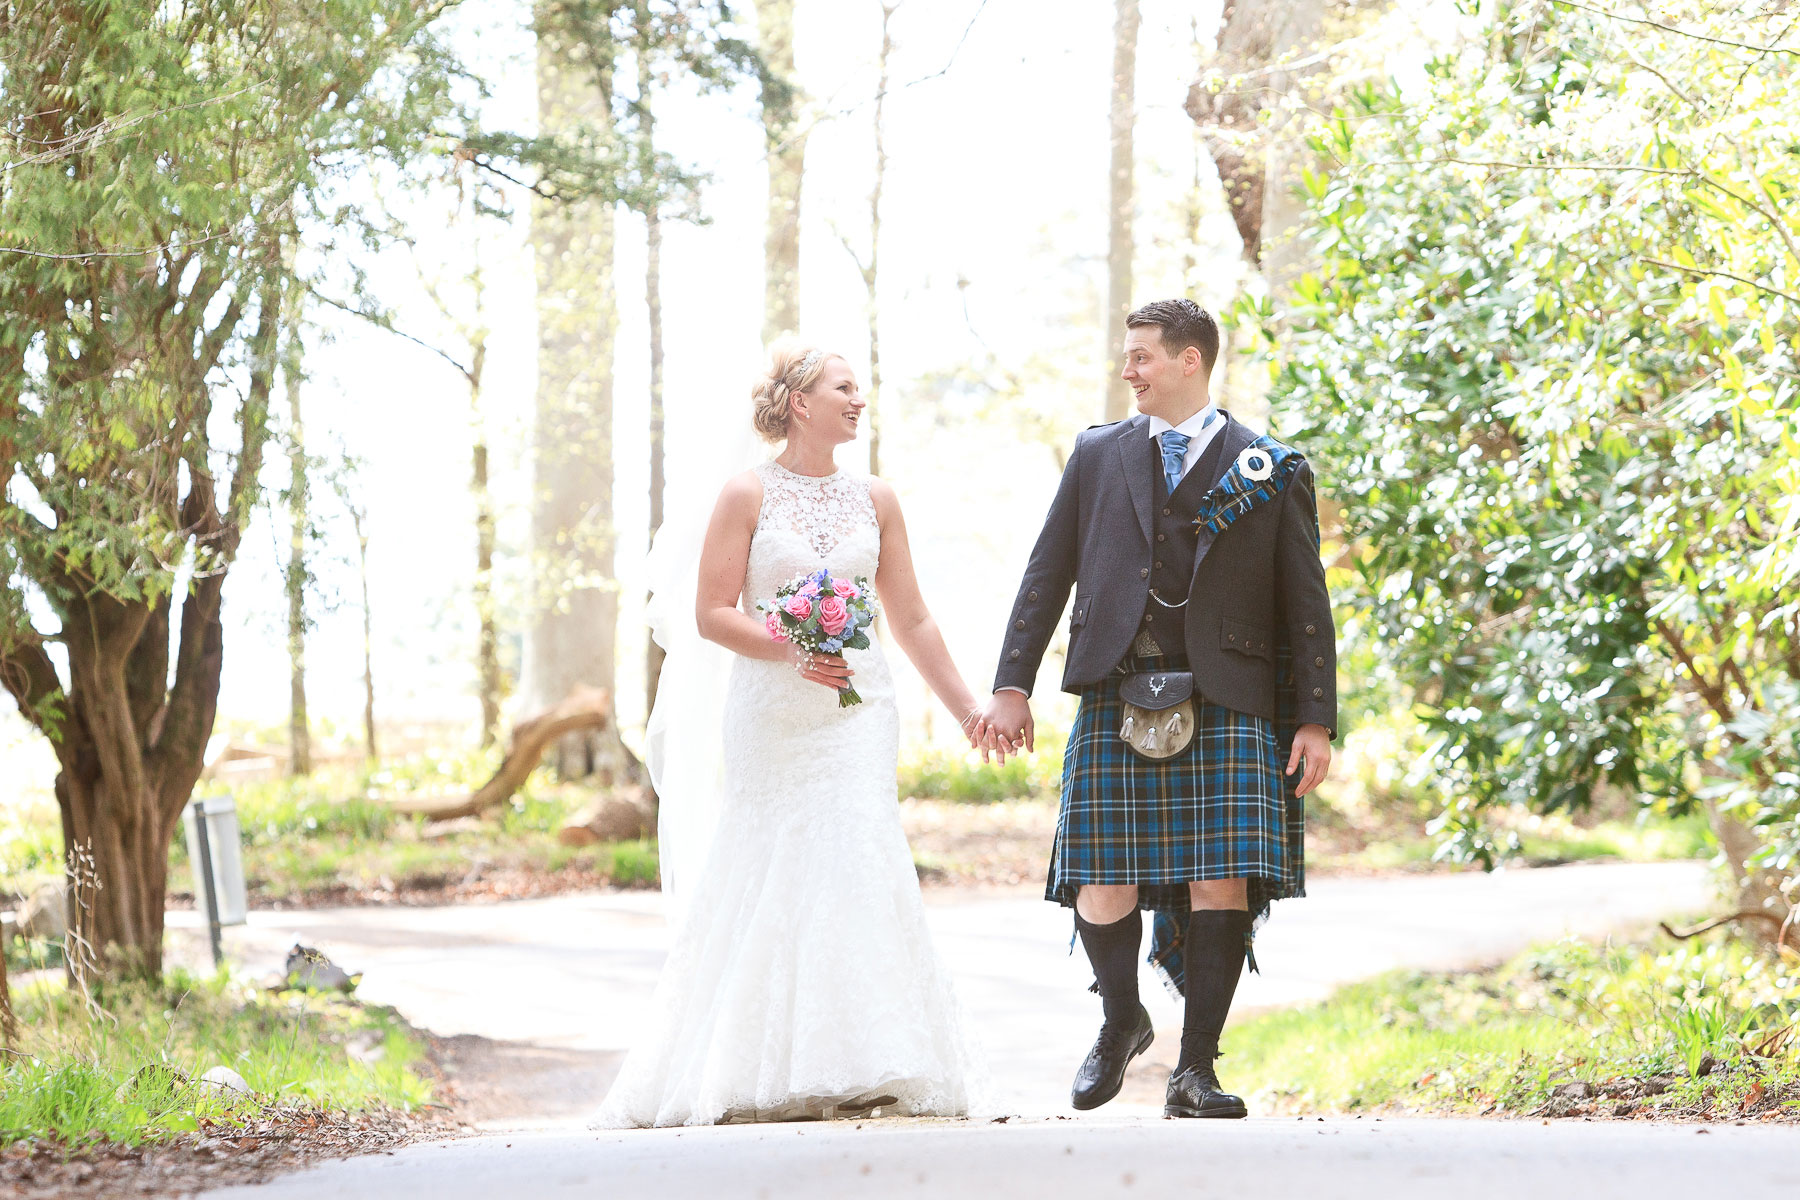 achnagairn-castle-wedding-inverness-4